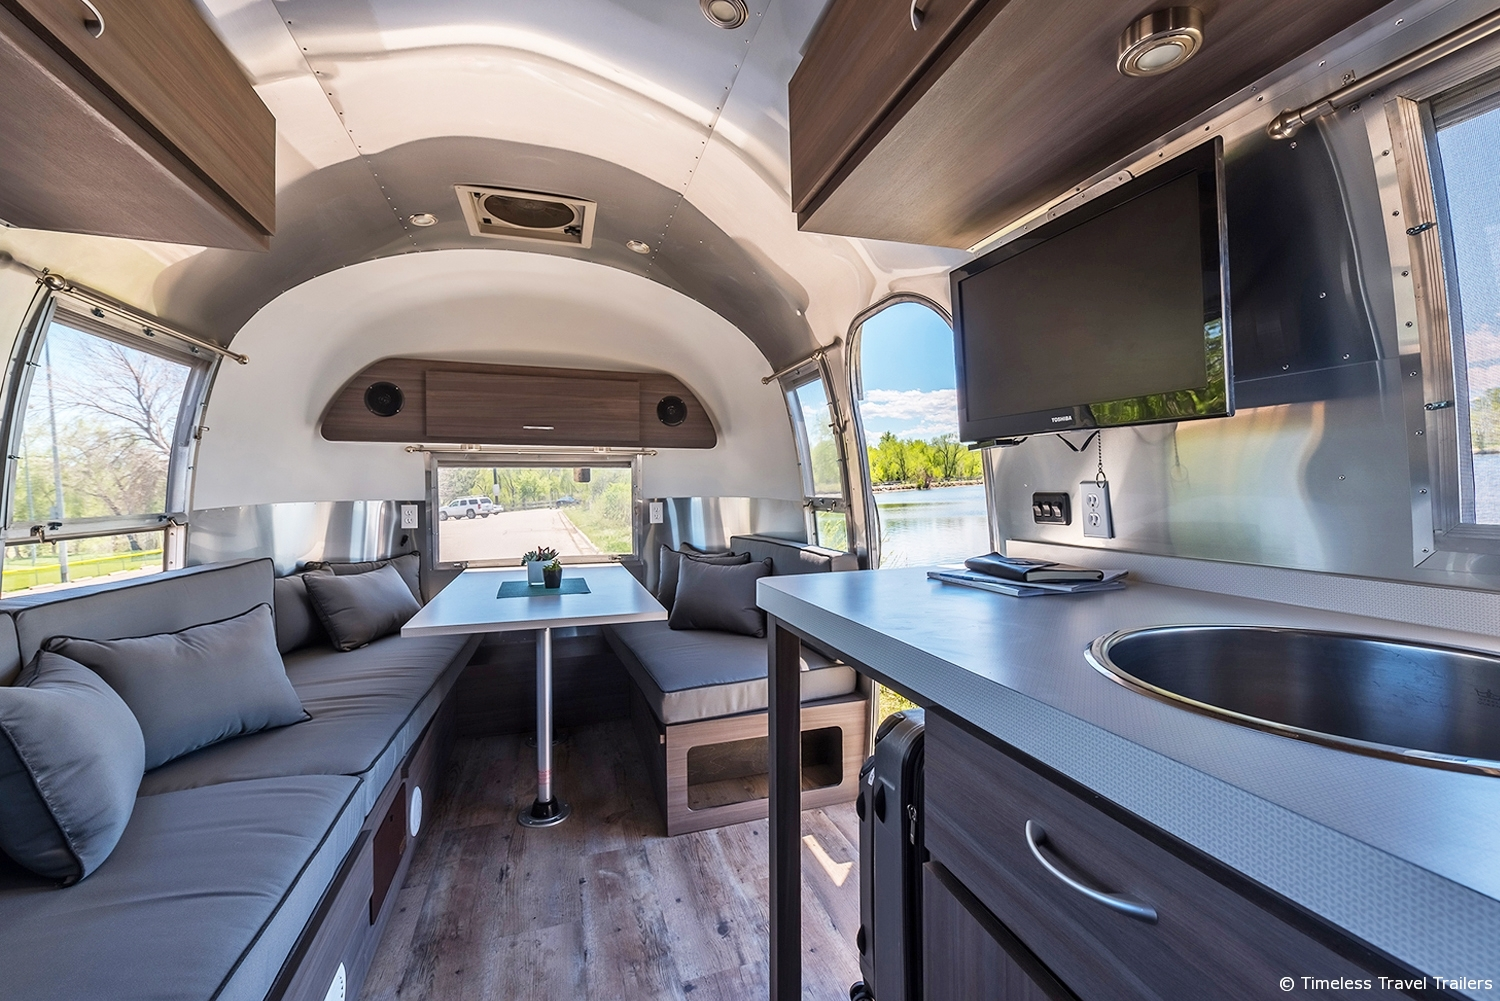 Marble Airfield Guest Lodging By Timeless Travel Trailers